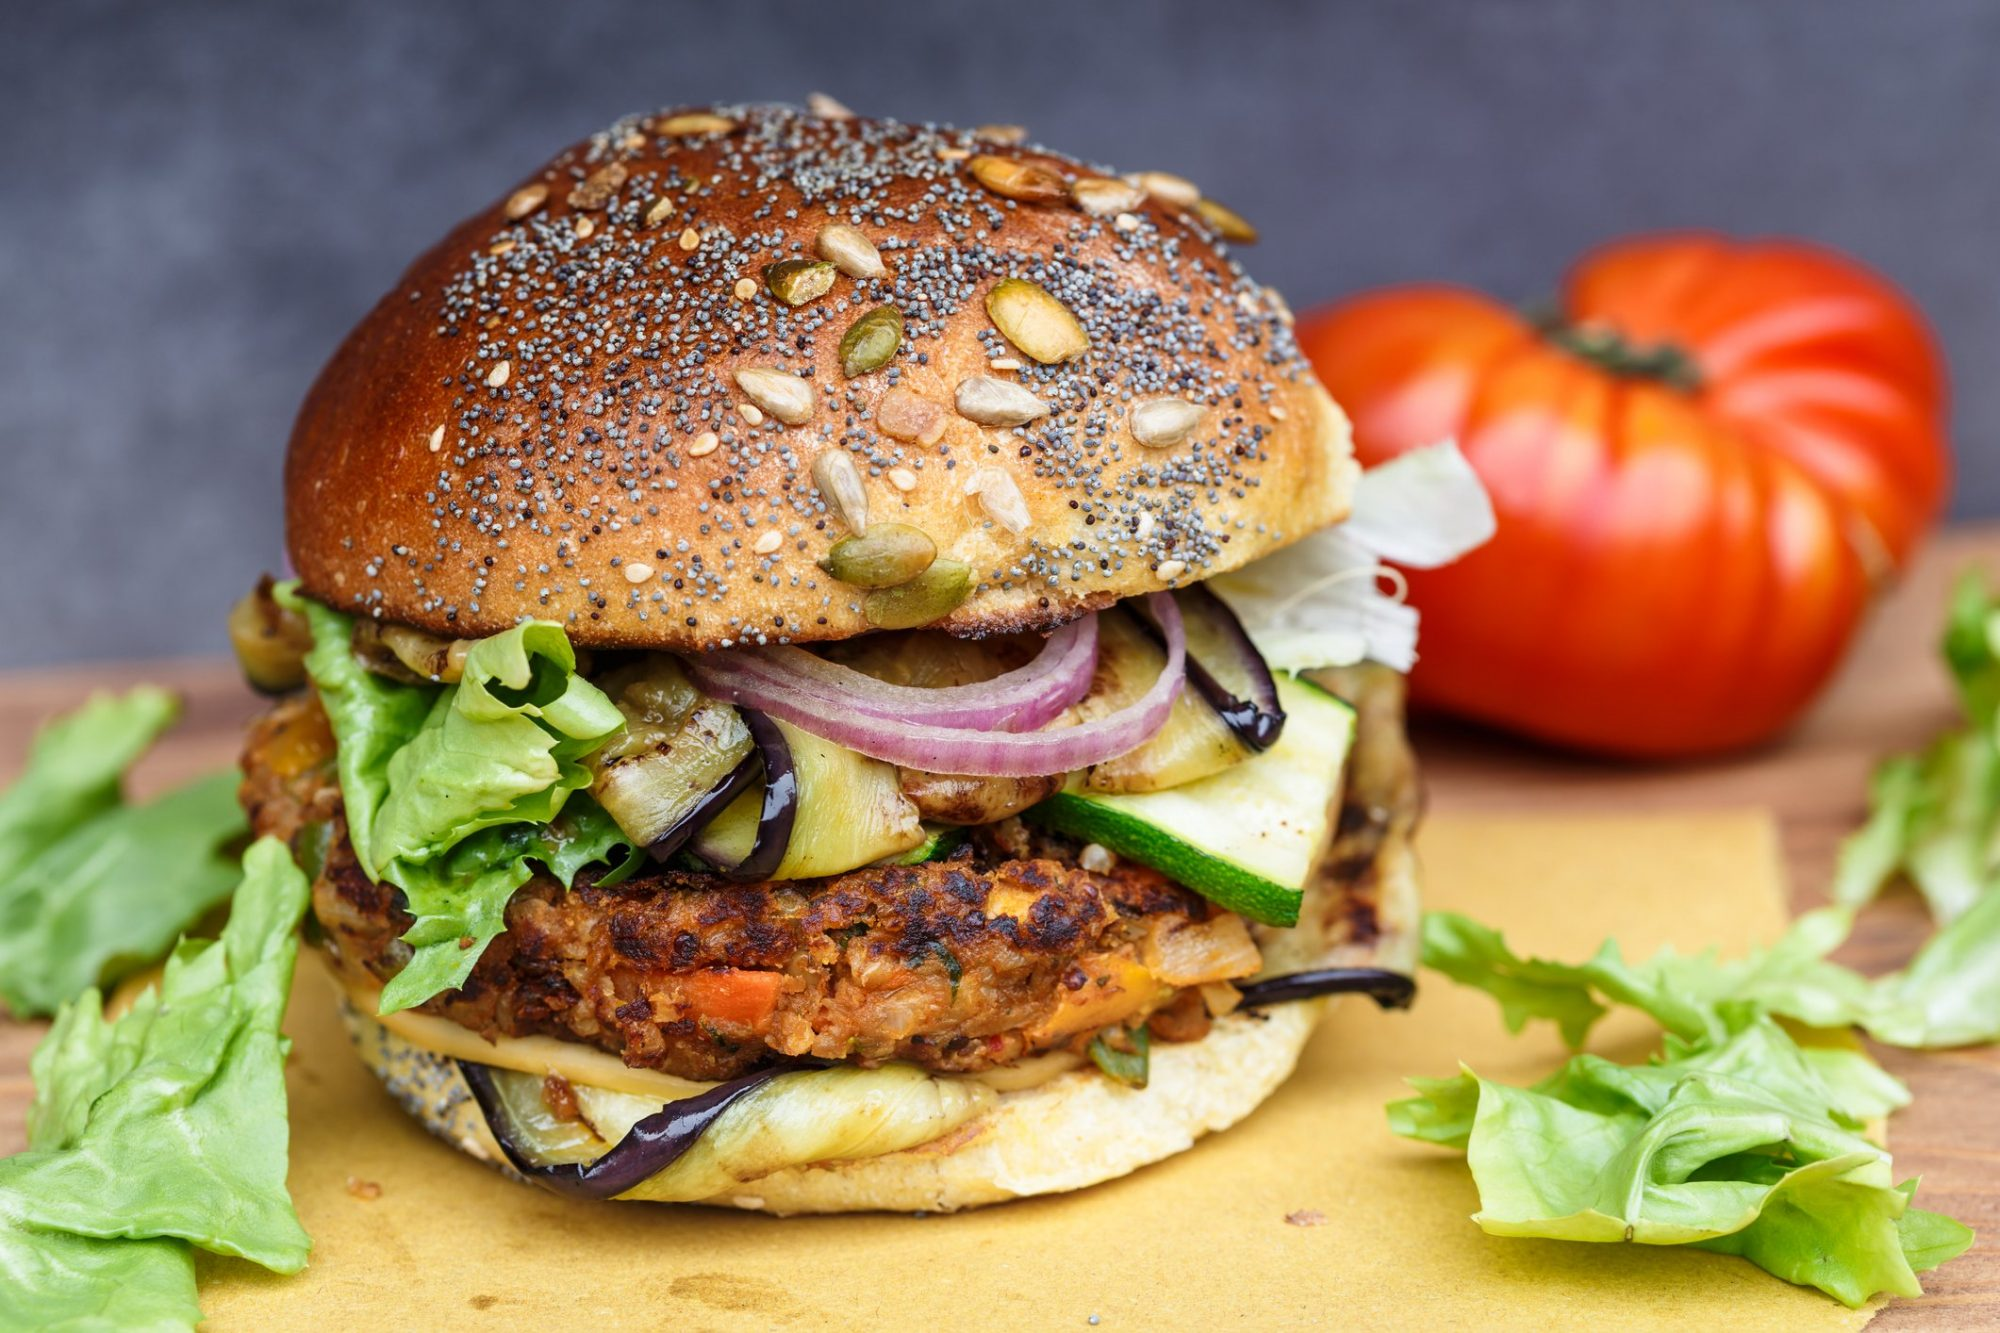 Veggie burger piled high with vegetables